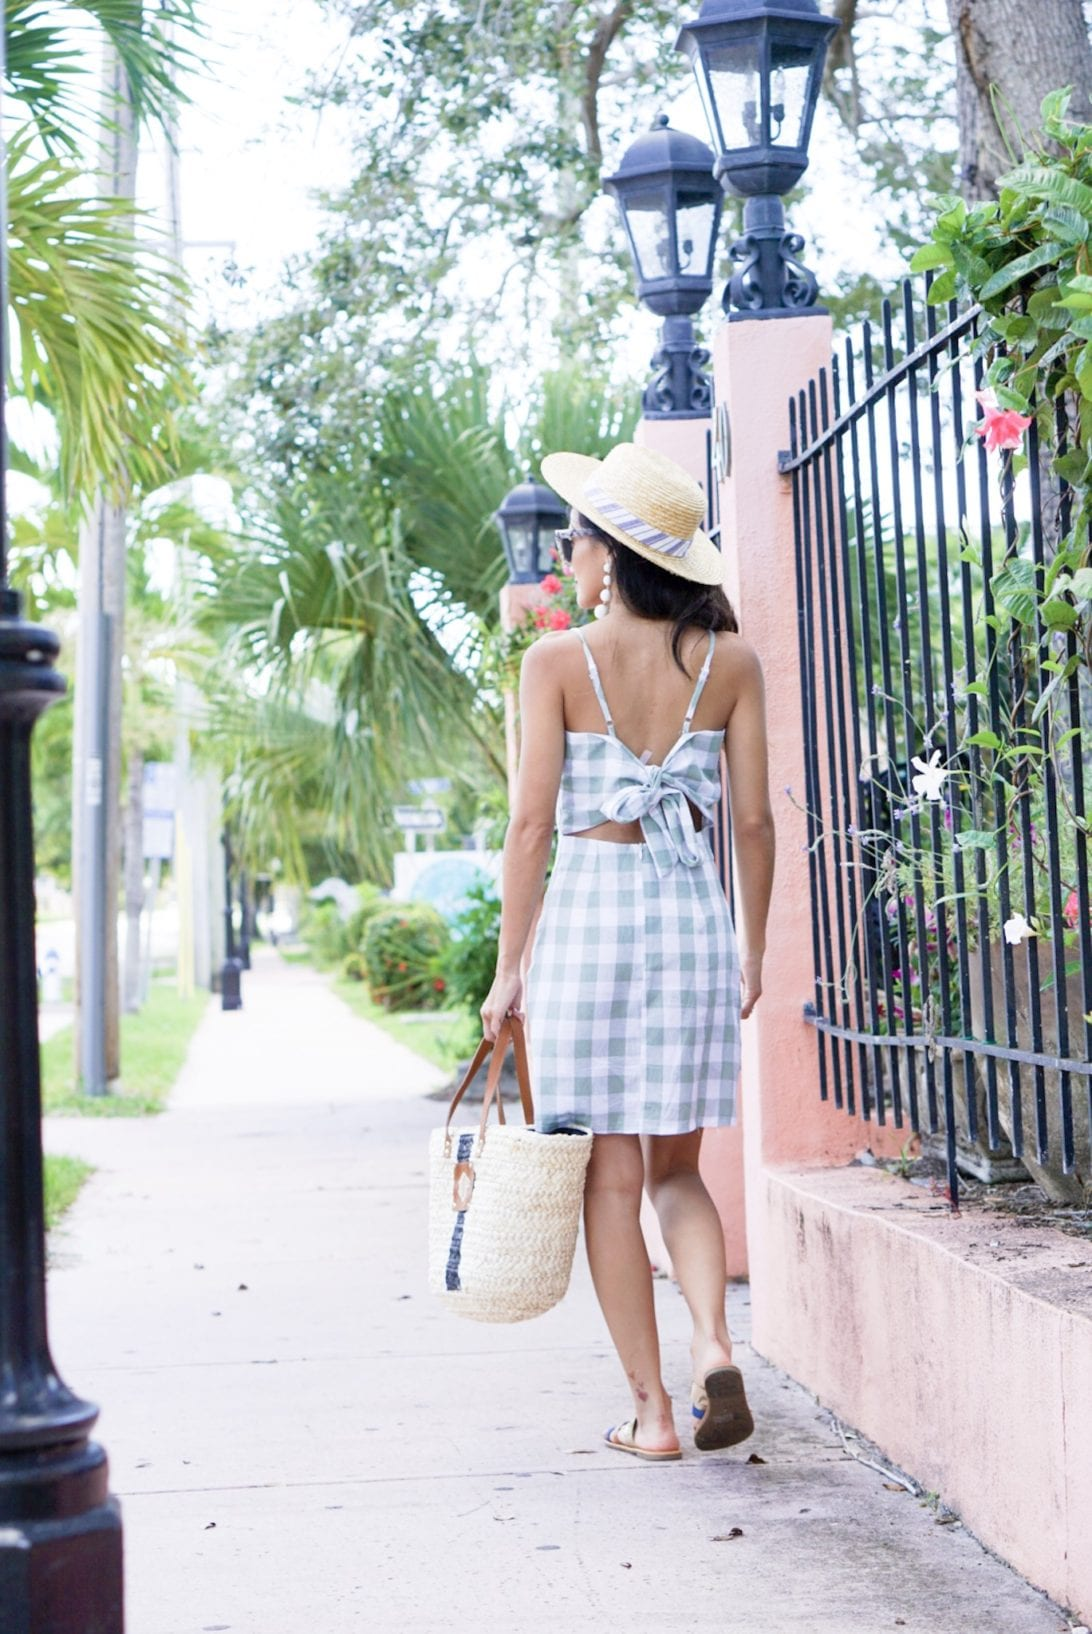 GREEN GINGHAM DRESS, SUMMER DRESS UNDER $50, SUMMER STYLE. BOAT HAT, BAUBLE BALL EARRINGS, FLORIDA, VACATION OUTFIT, VACATIONS STYLE, QUAY SUNGLASSES, MARLEYLILLY, MONOGRAMMED STRAW BAG, SUMMER BAG, GOLD SANDALS, SUMMER VACATION OUTFIT